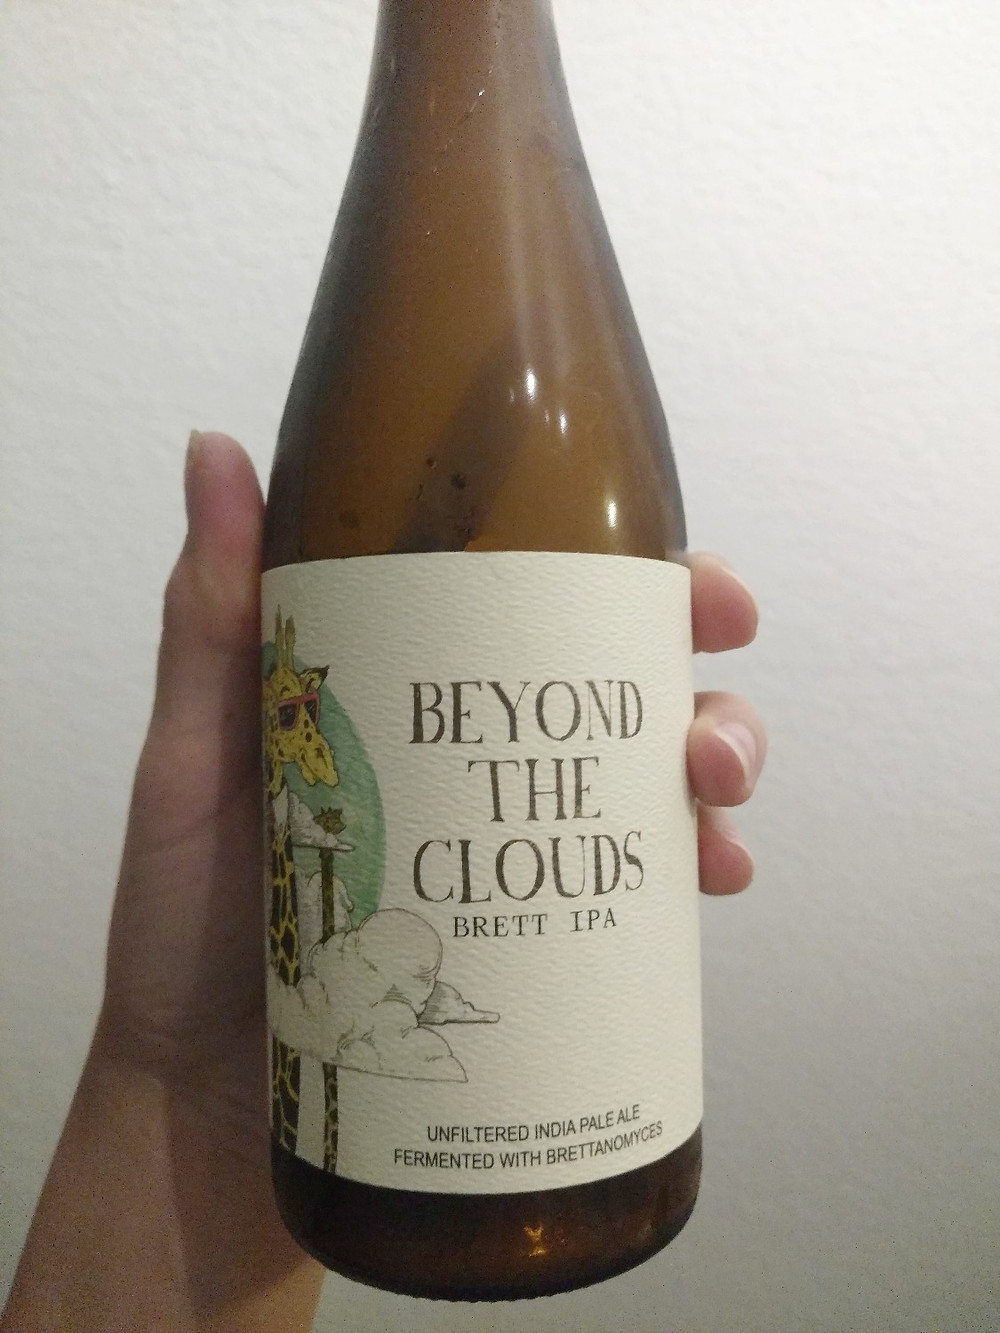 Beyond the Clouds Brett IPA